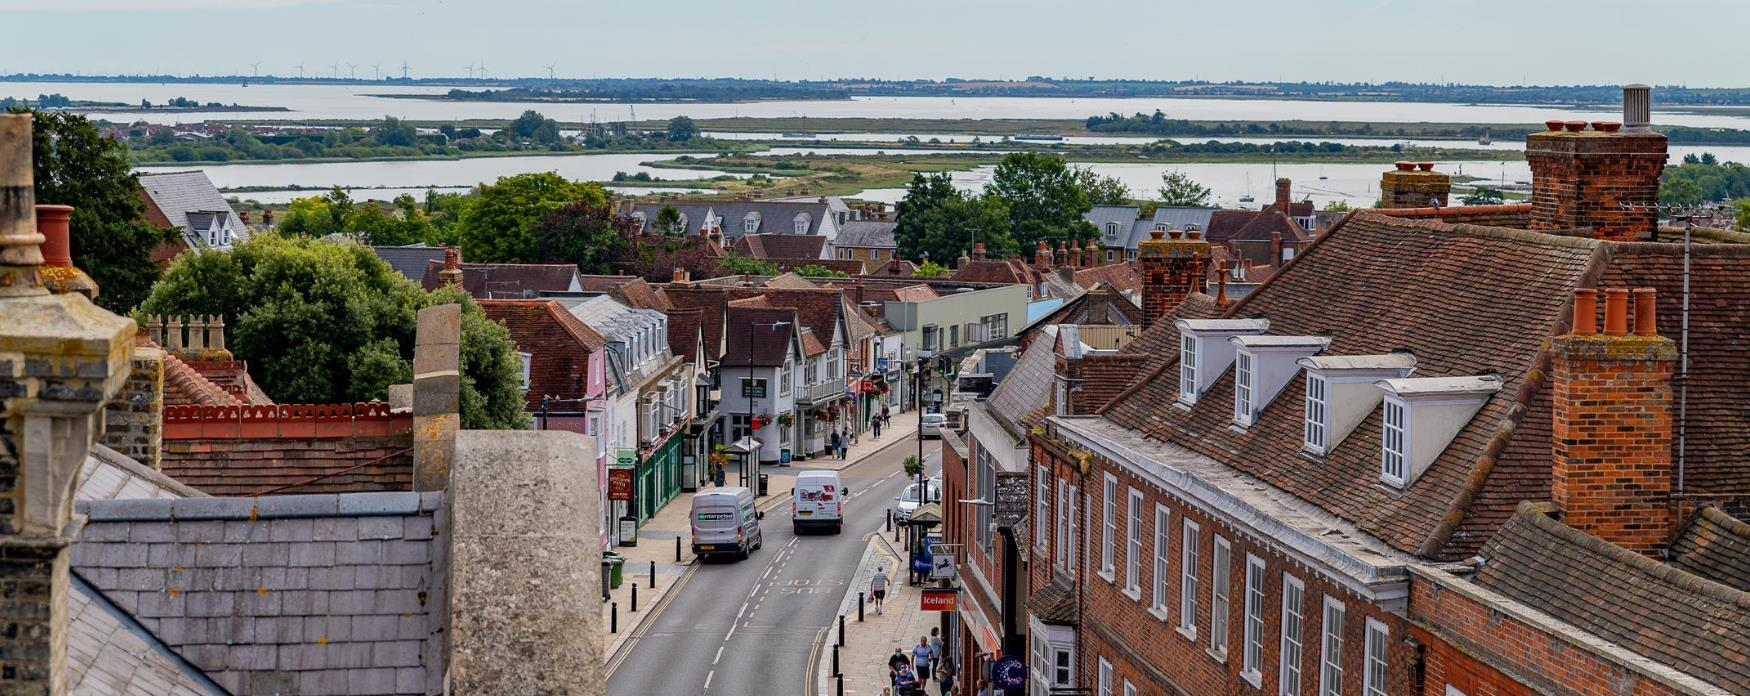 A view of Maldon from the roof of Moot Hall